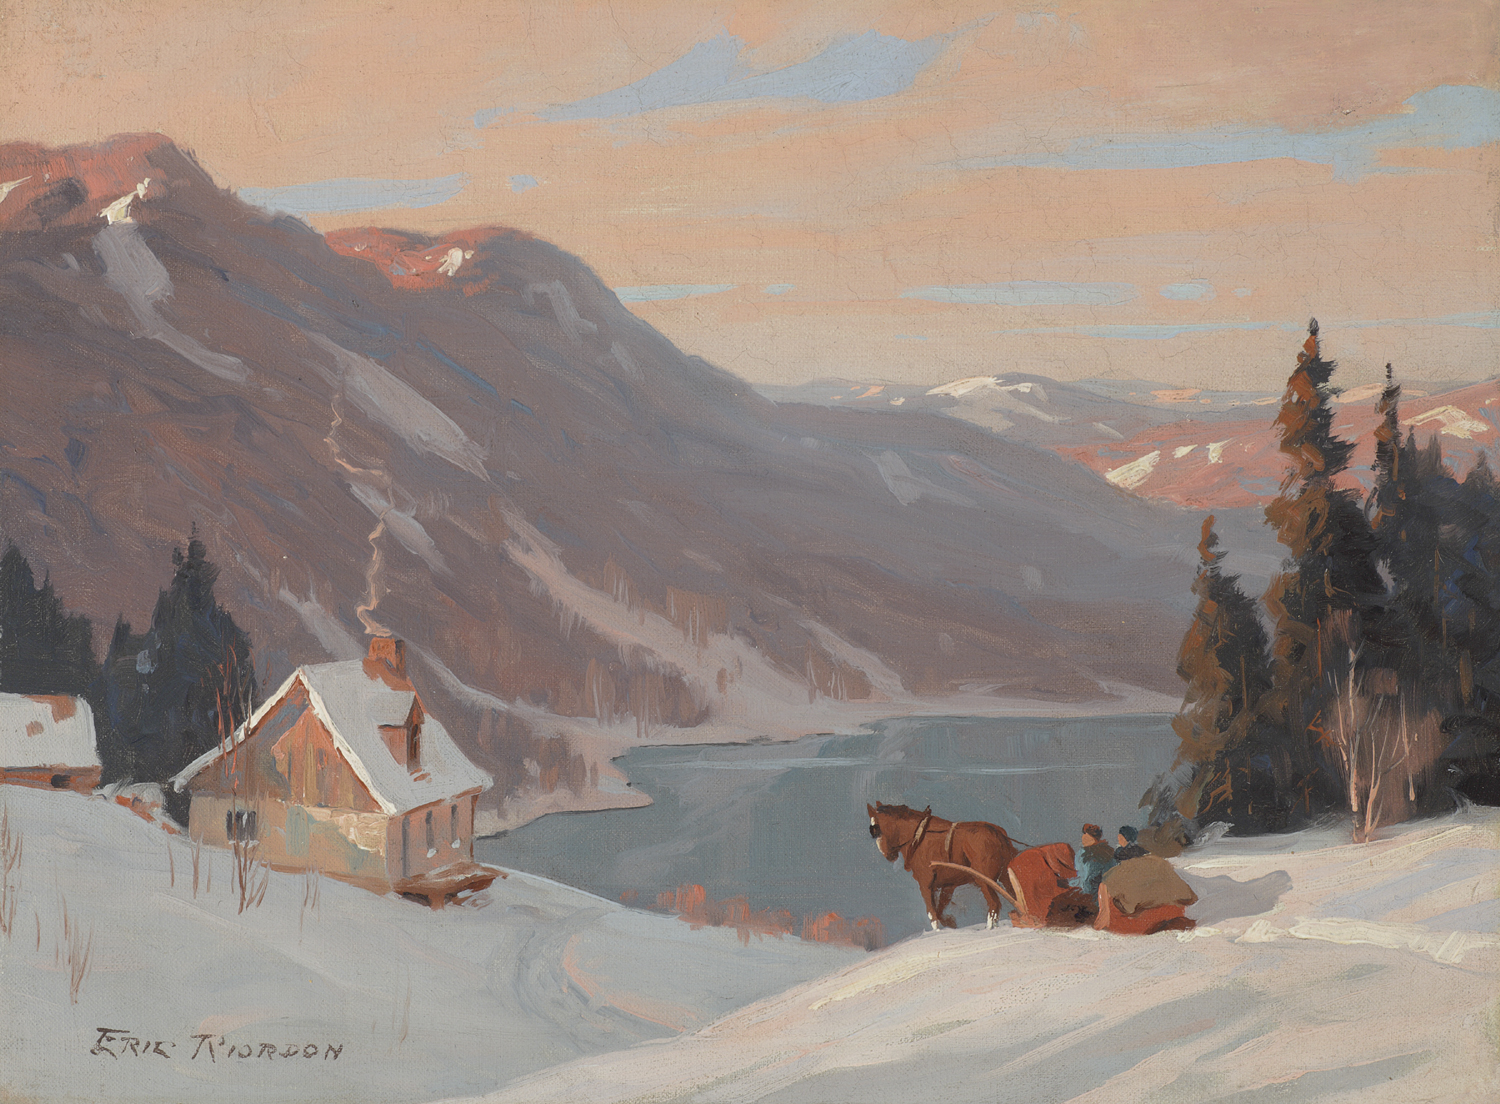 Eric Riordon (Canadian 1906-1948) The Road Home